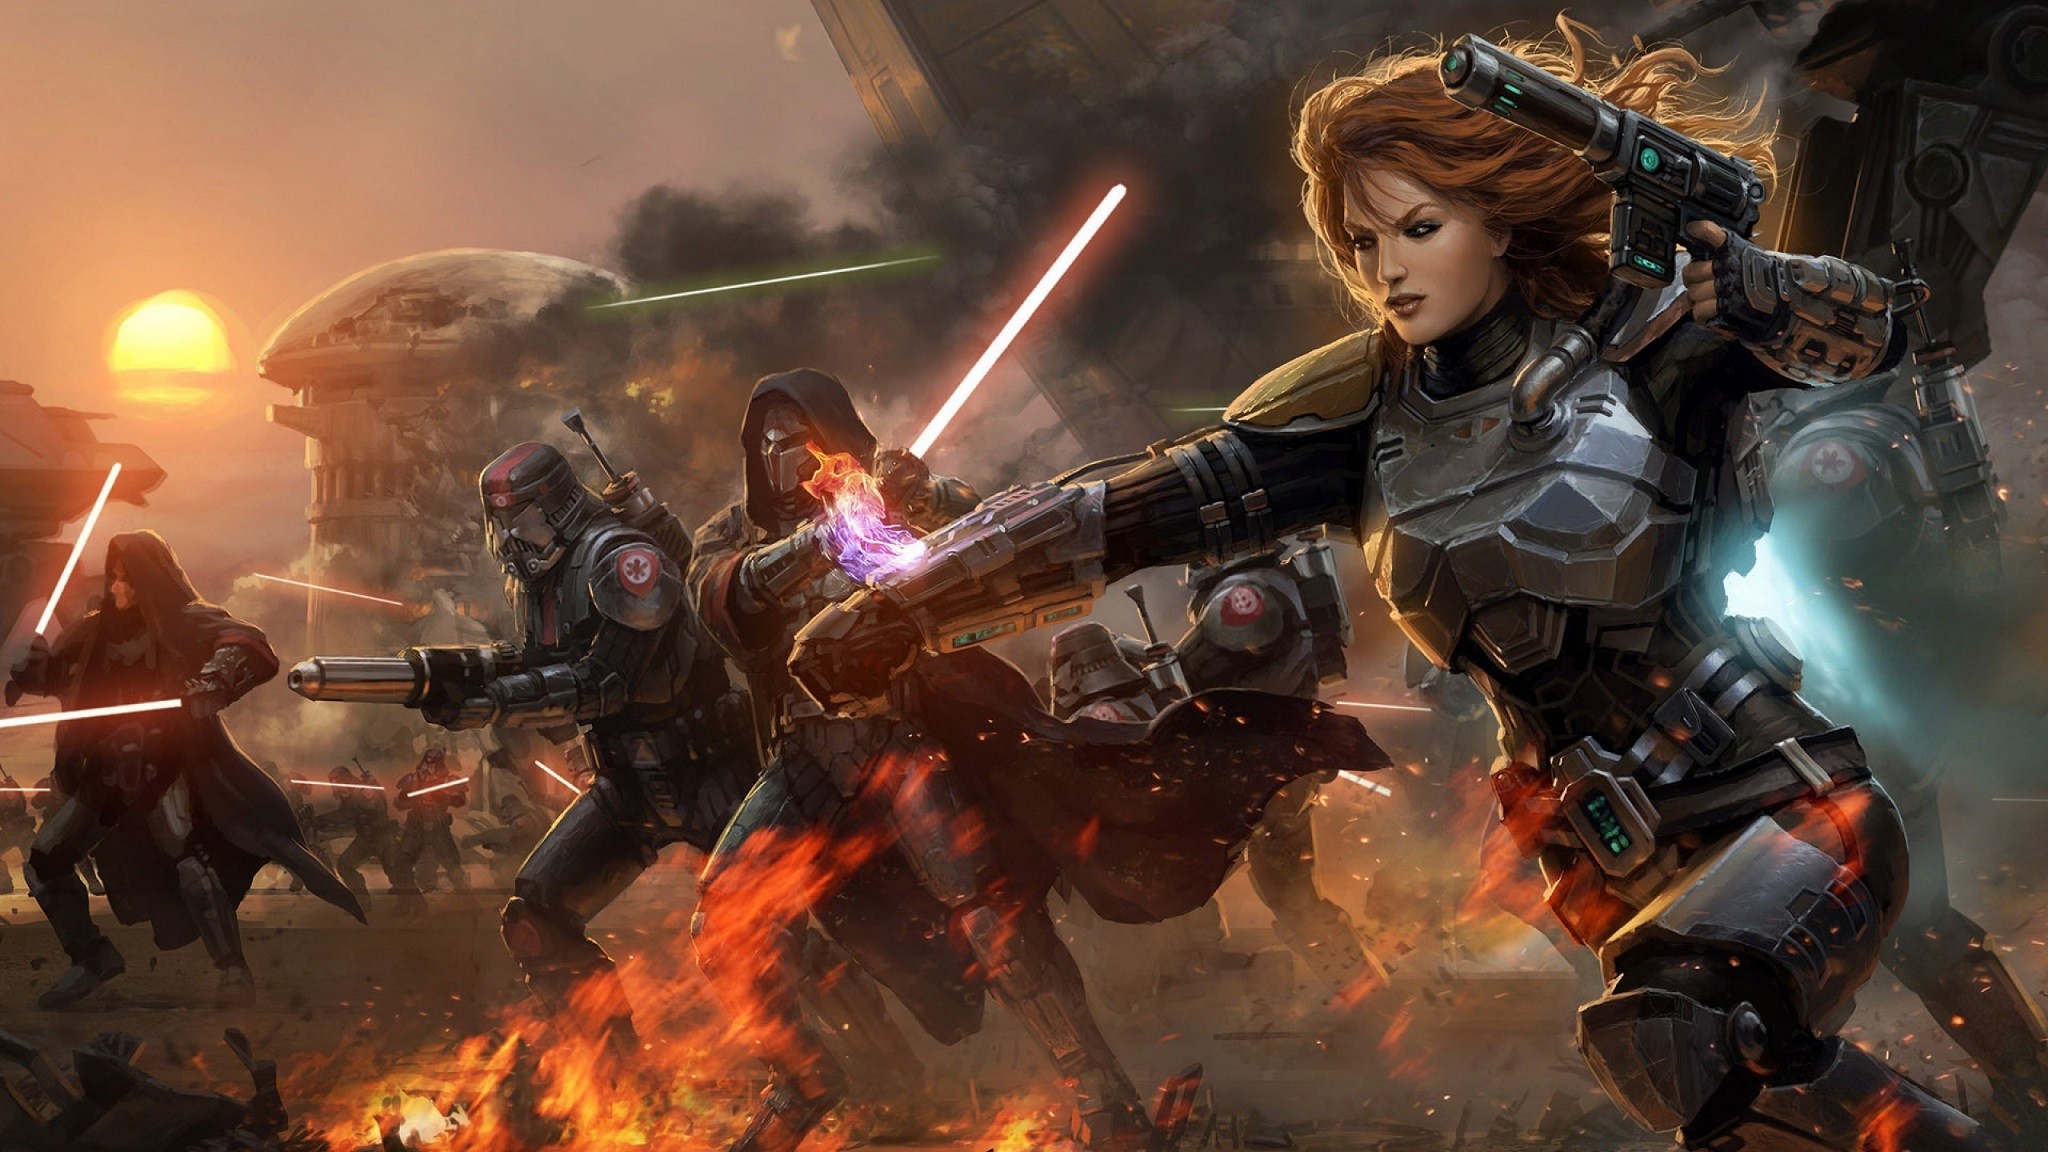 Res: 2048x1152, Video Game - Star Wars: The Old Republic Game Star Wars Battle Sci Fi  Lightsaber